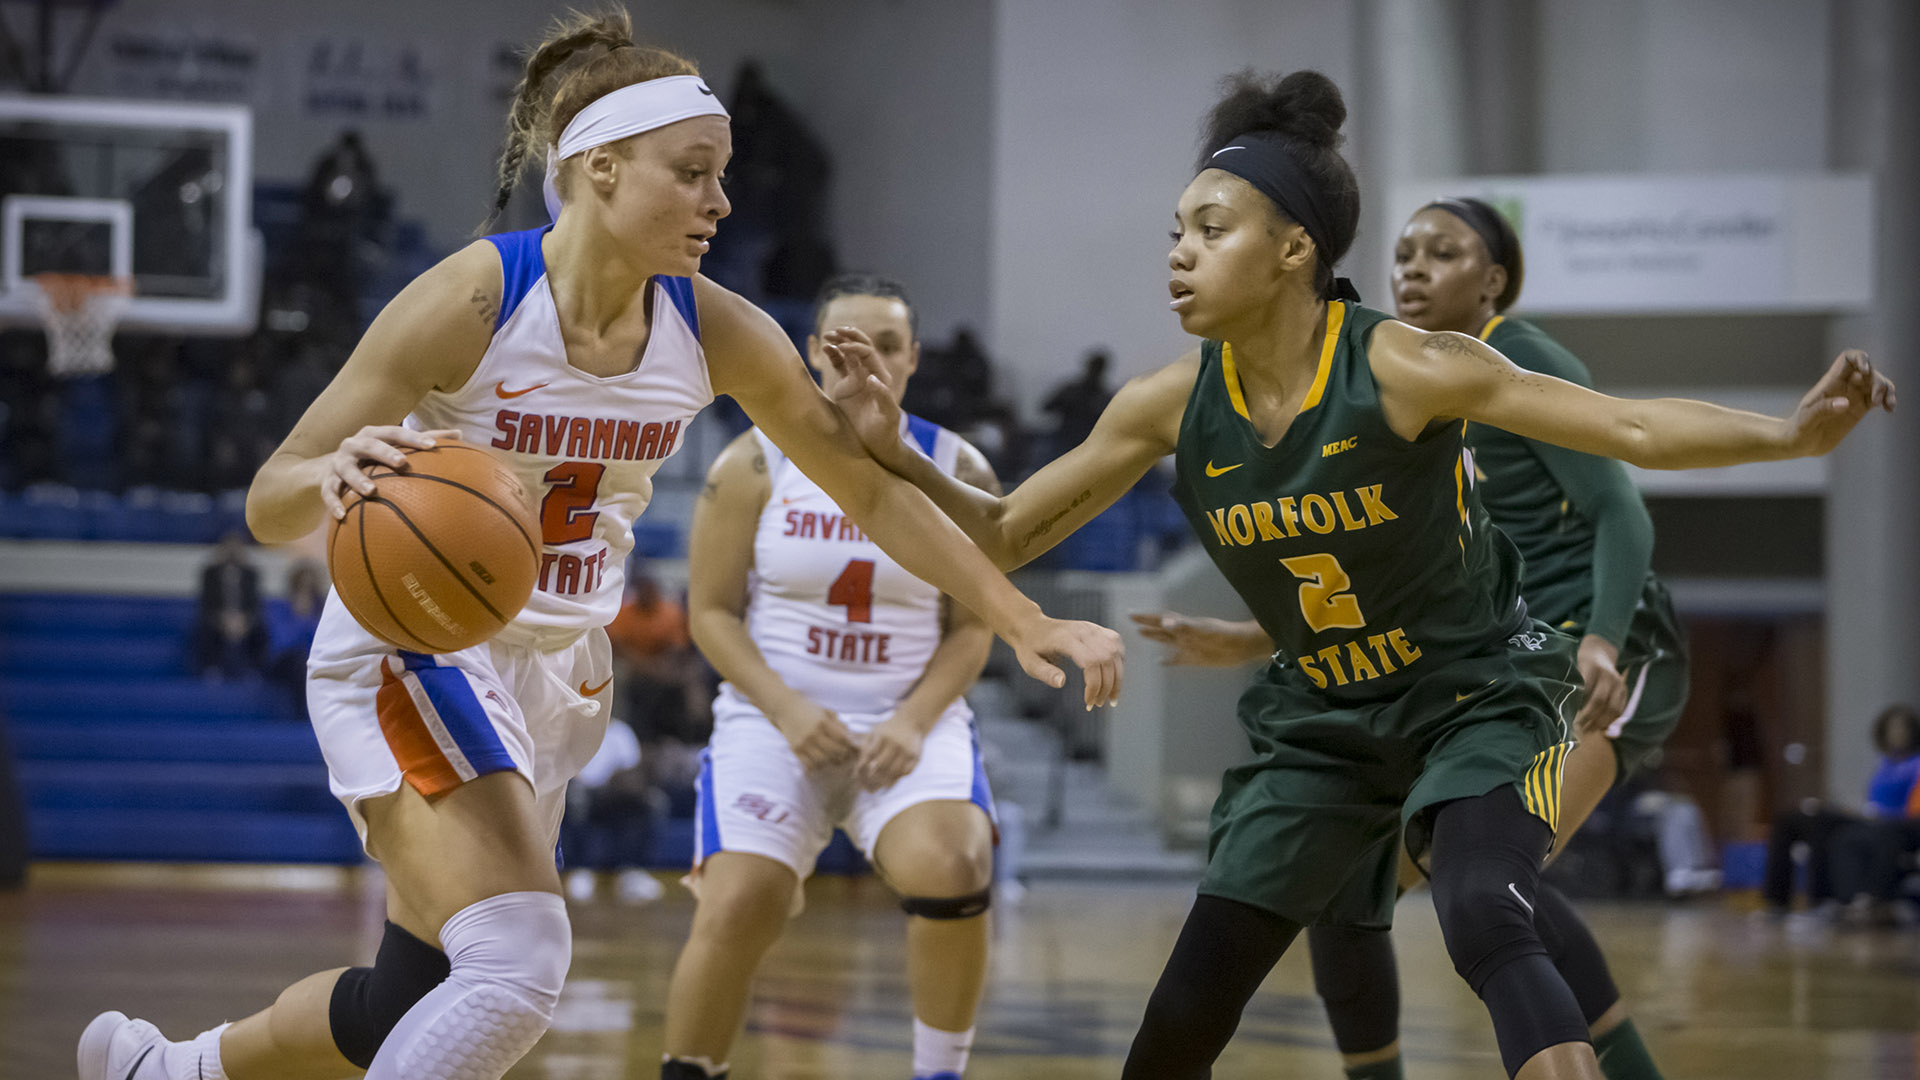 351fcfb7a9f8 Allen Sets School Record and Sowell Has Career Day  WBB Falls to ...